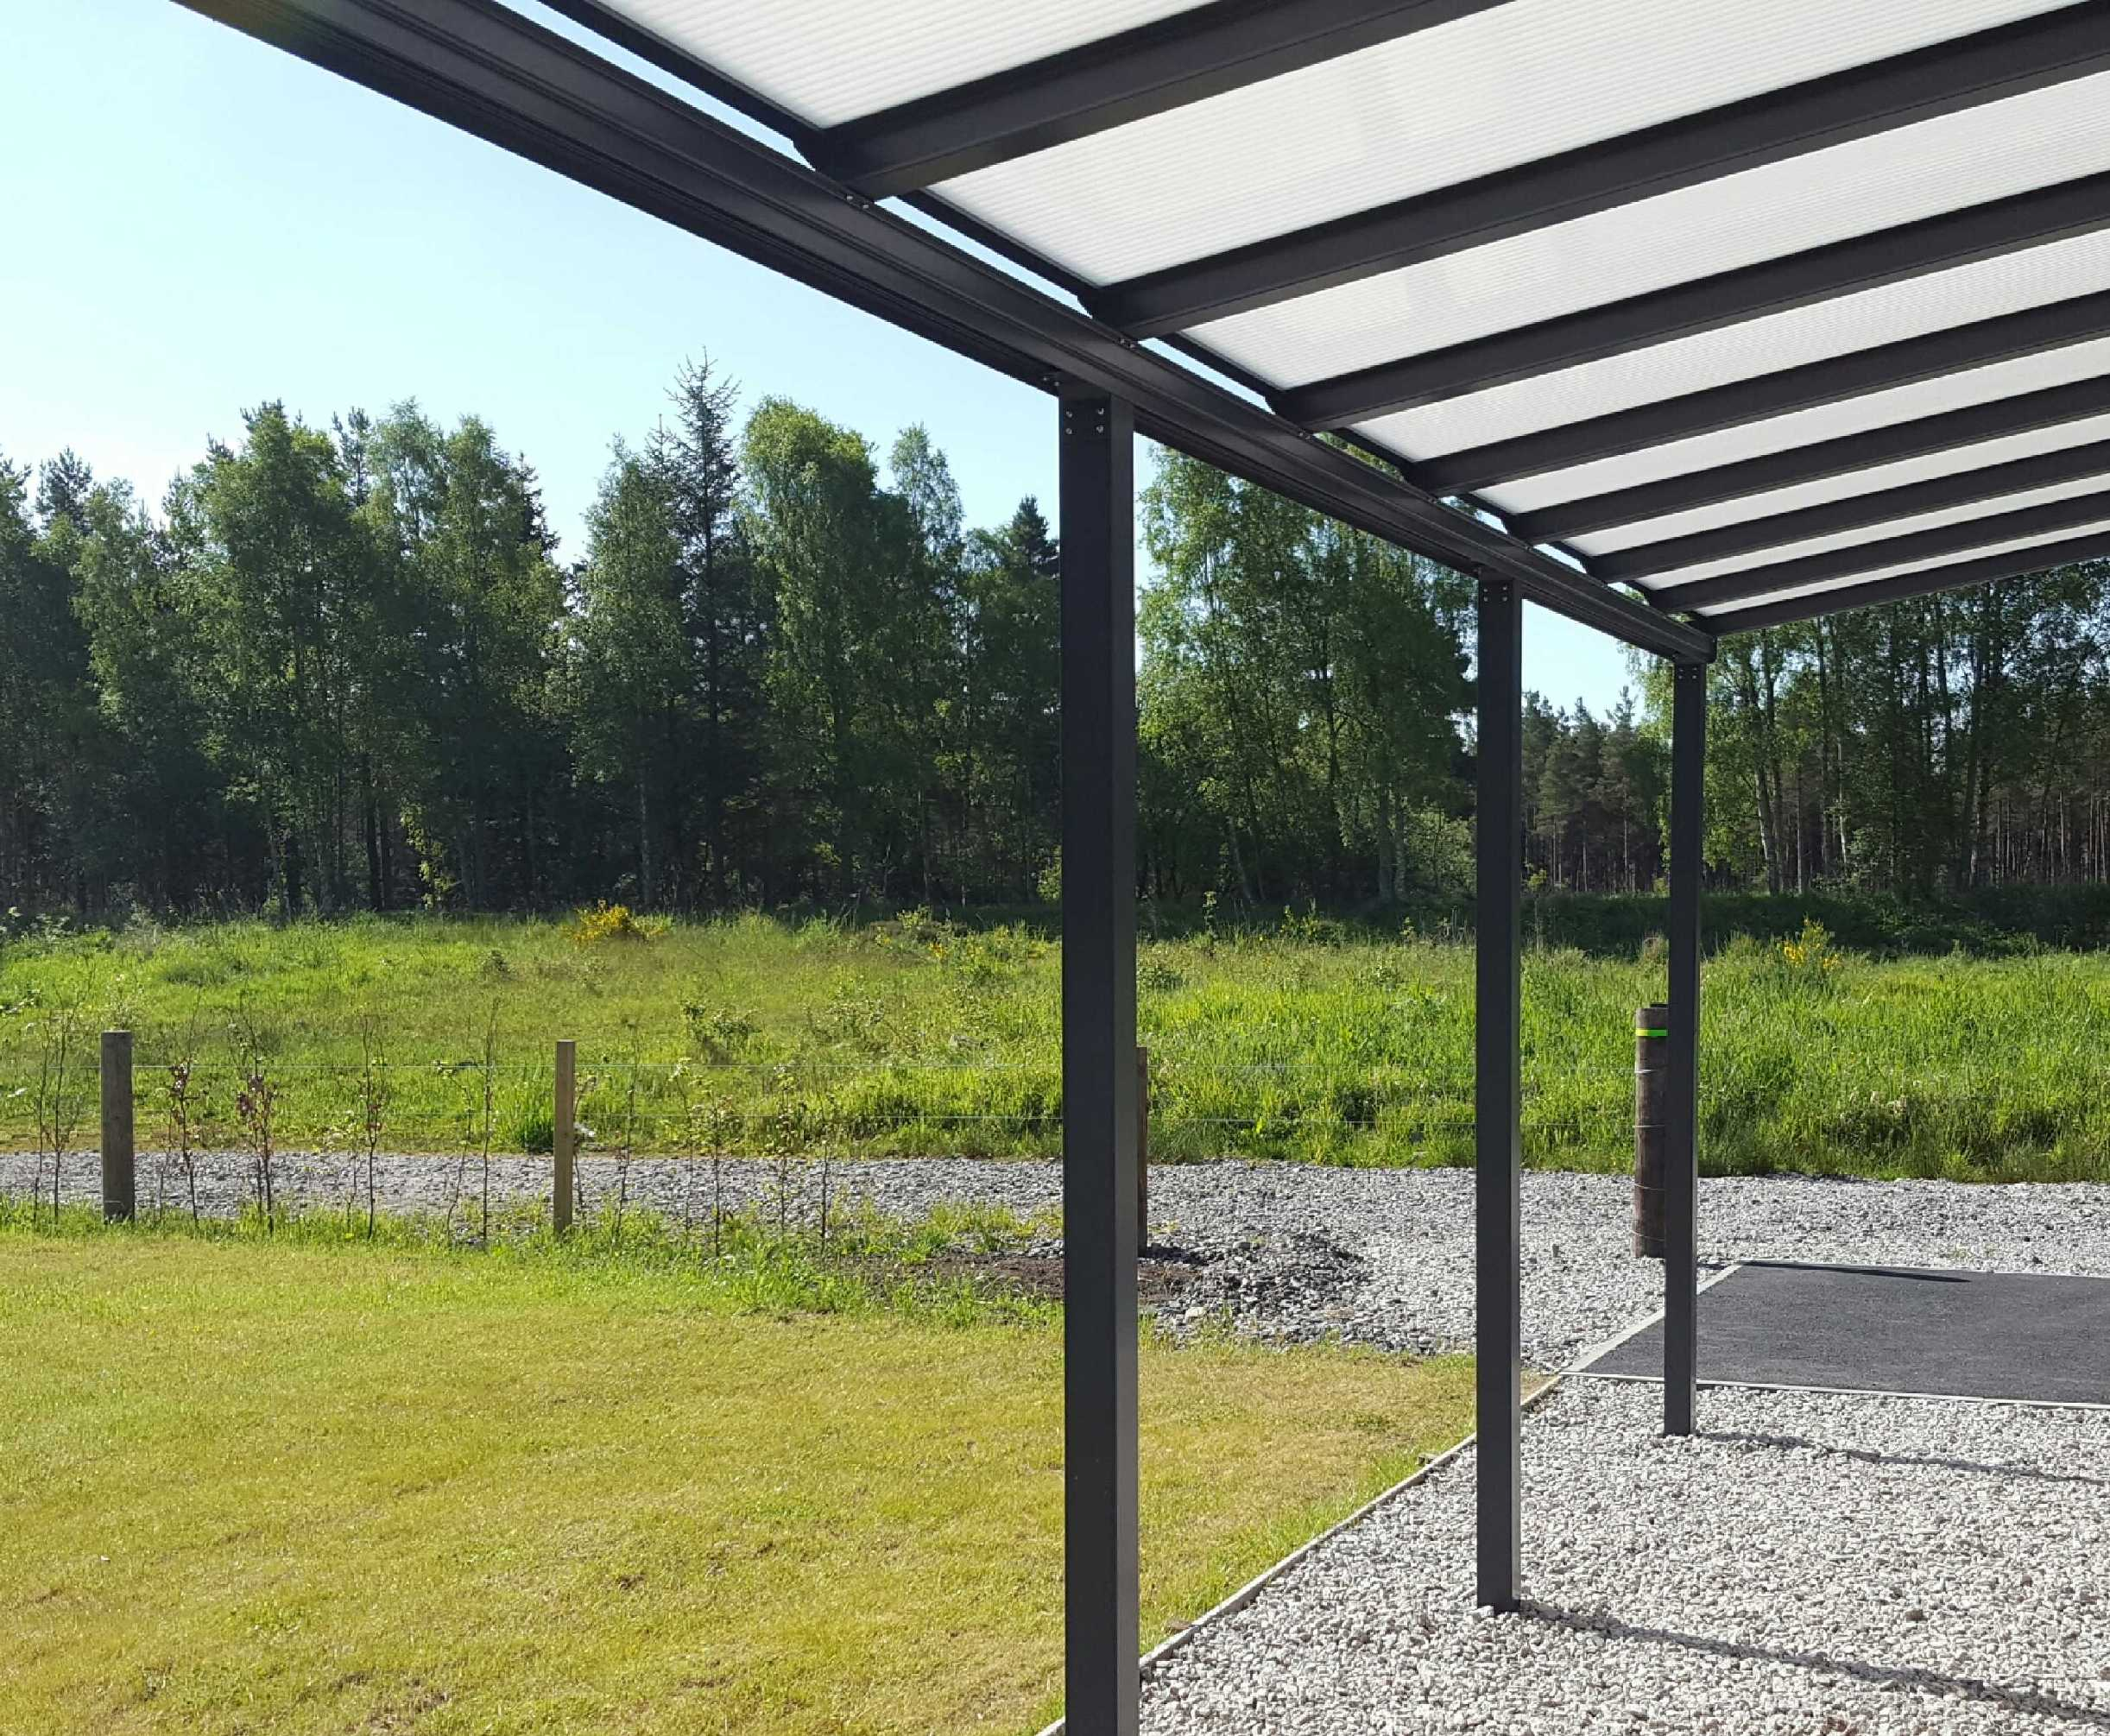 Omega Smart Lean-To Canopy, Anthracite Grey, UNGLAZED for 6mm Glazing - 7.7m (W) x 1.5m (P), (4) Supporting Posts